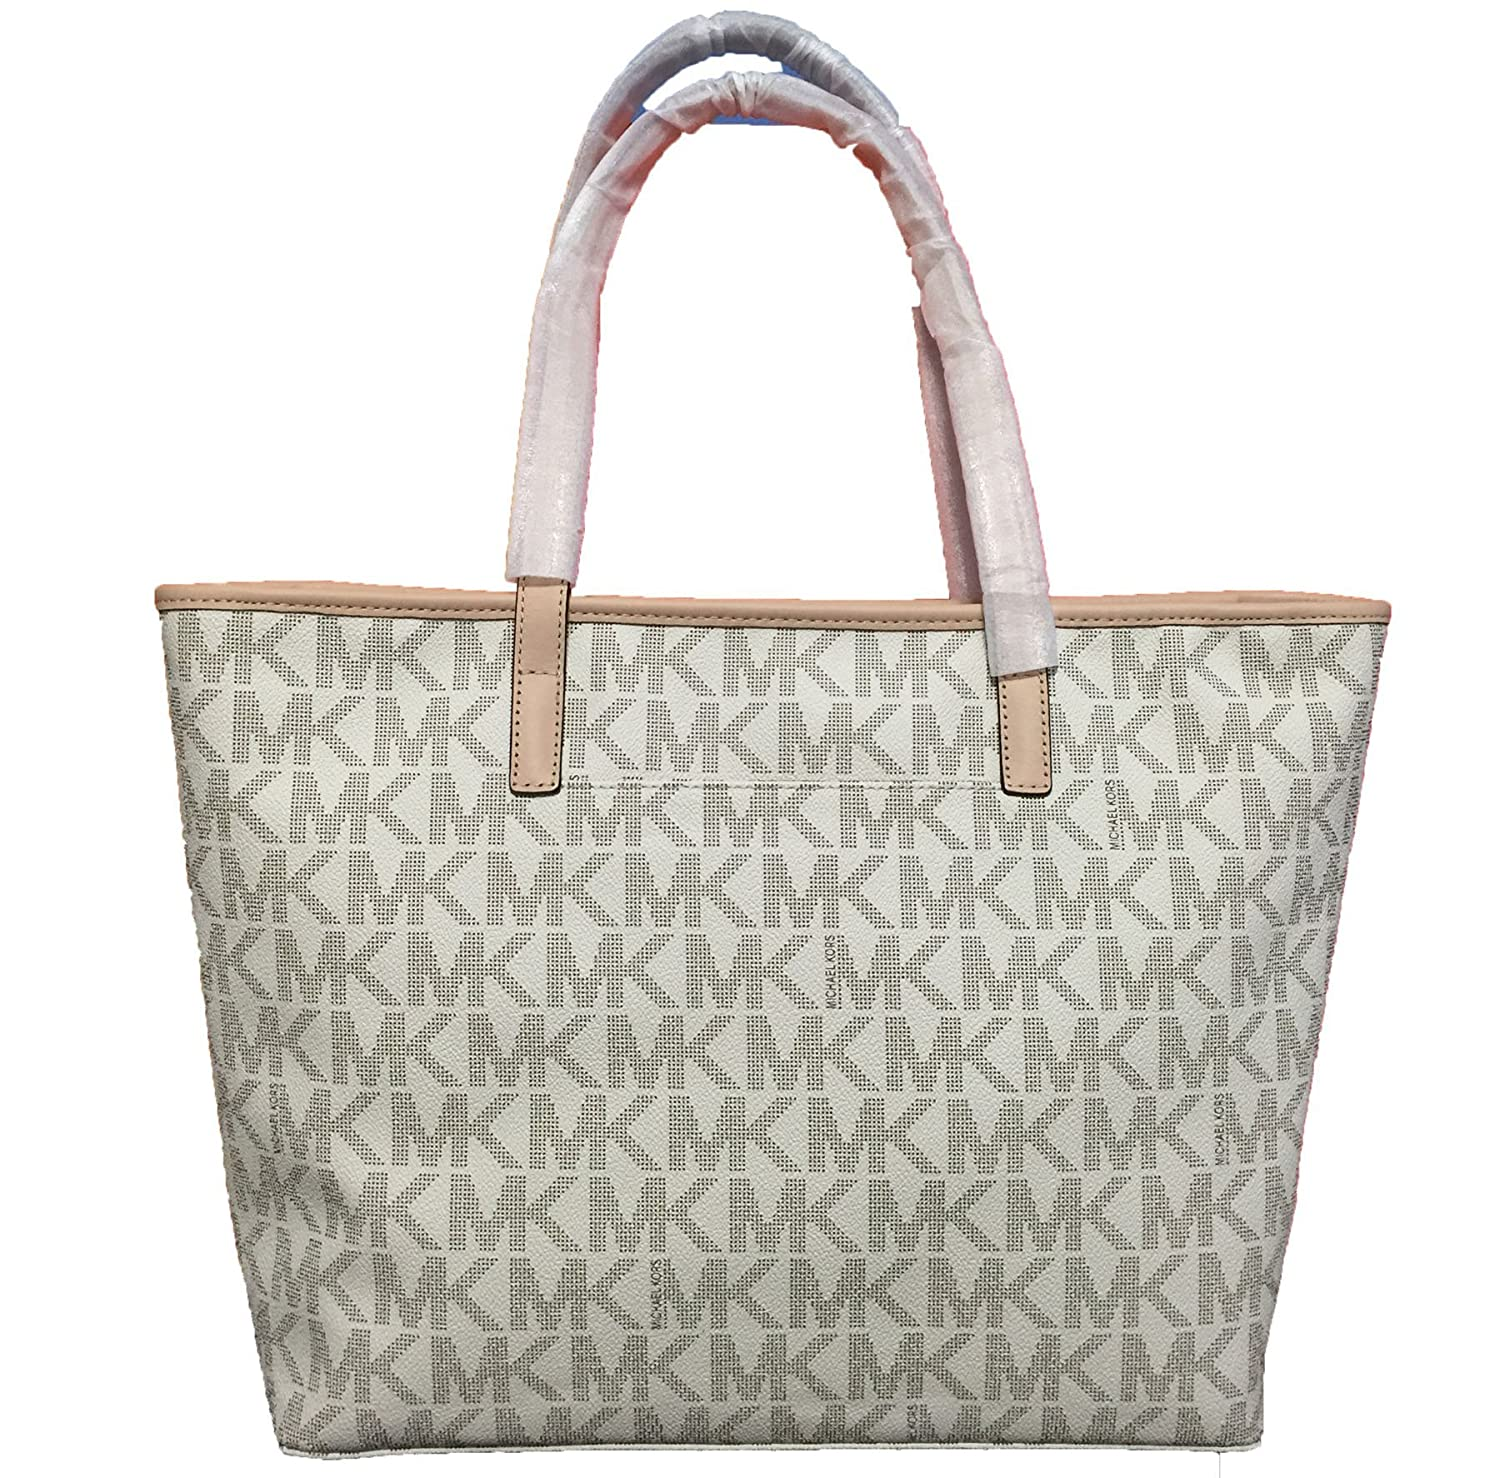 d6df96ca64ab Michael Kors Vanilla Jet Set Monogram Tote Handbag RRP £270: Amazon.co.uk:  Shoes & Bags